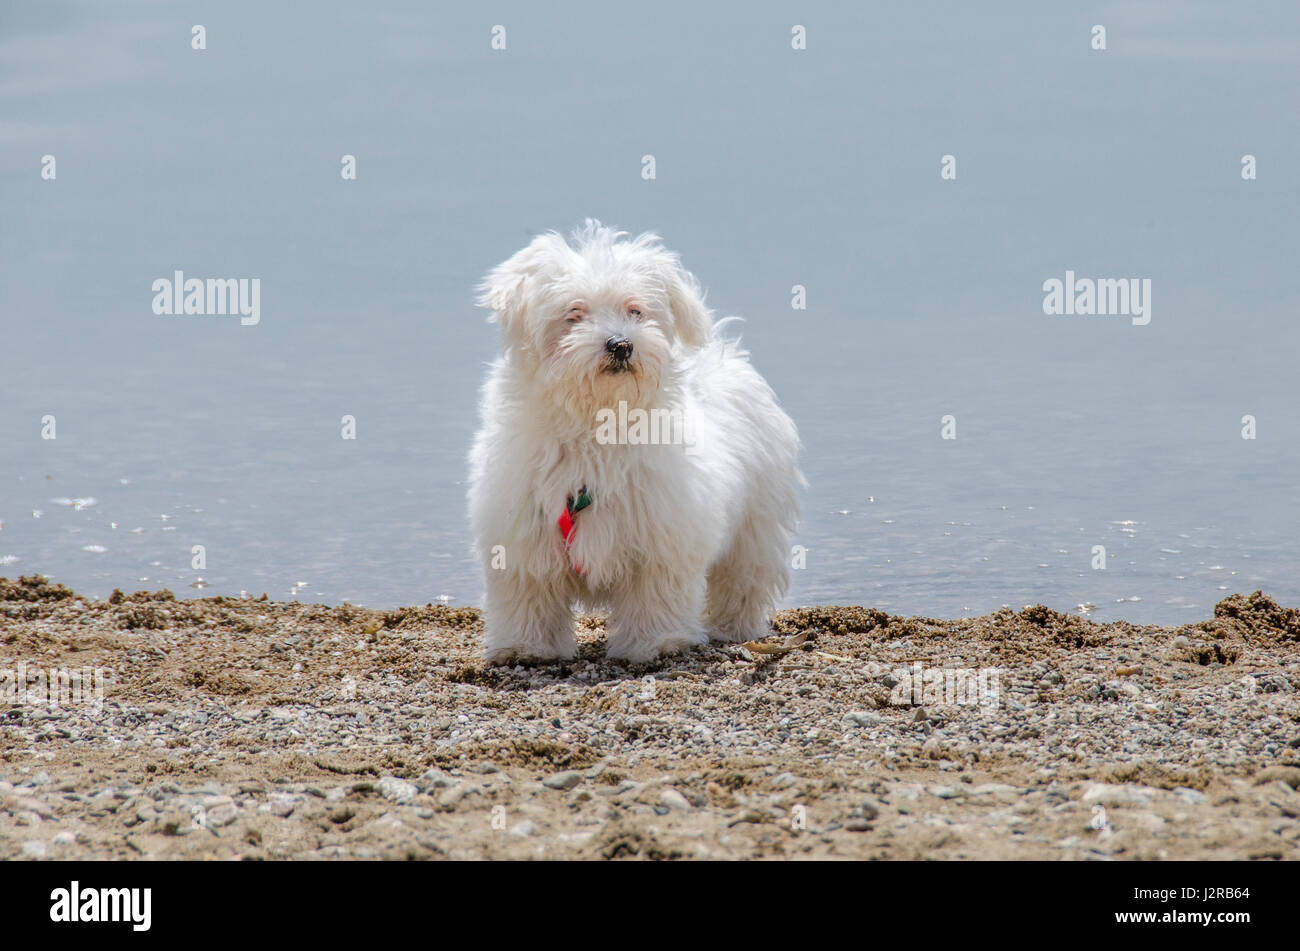 Cute fluffy dog on beach - Maltese puppy - Stock Image